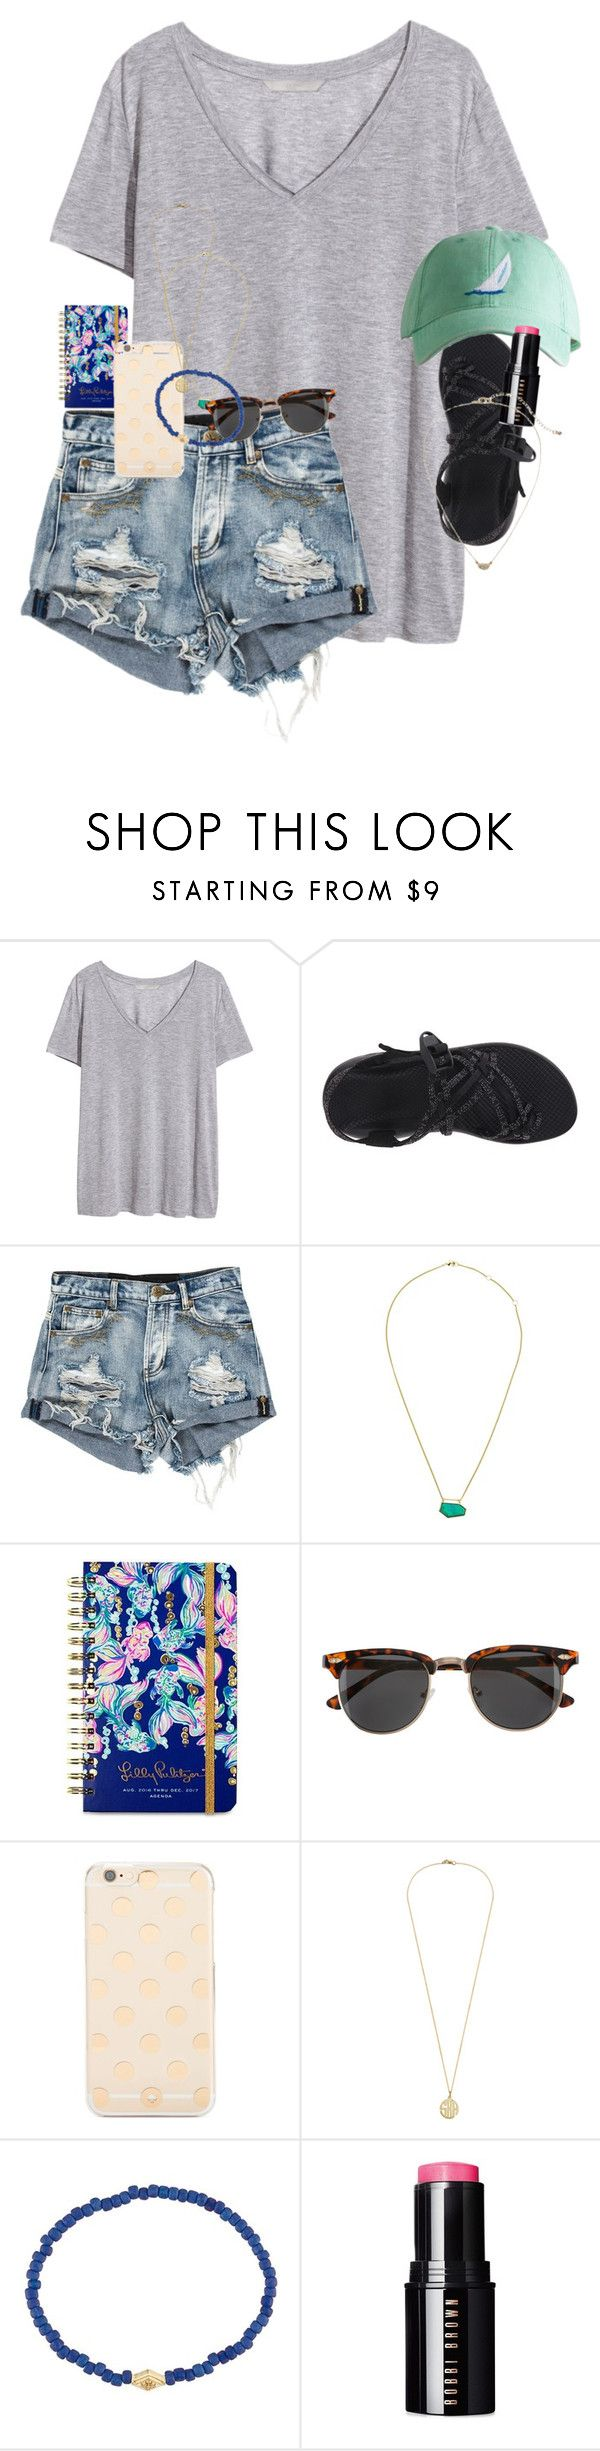 """""""Kendall comes tomorrow!!!!"""" by erinlmarkel ❤ liked on Polyvore featuring H&M, Chaco, One OAK by Sara, Lilly Pulitzer, Kate Spade, Luis Morais, Bobbi Brown Cosmetics and Gap"""